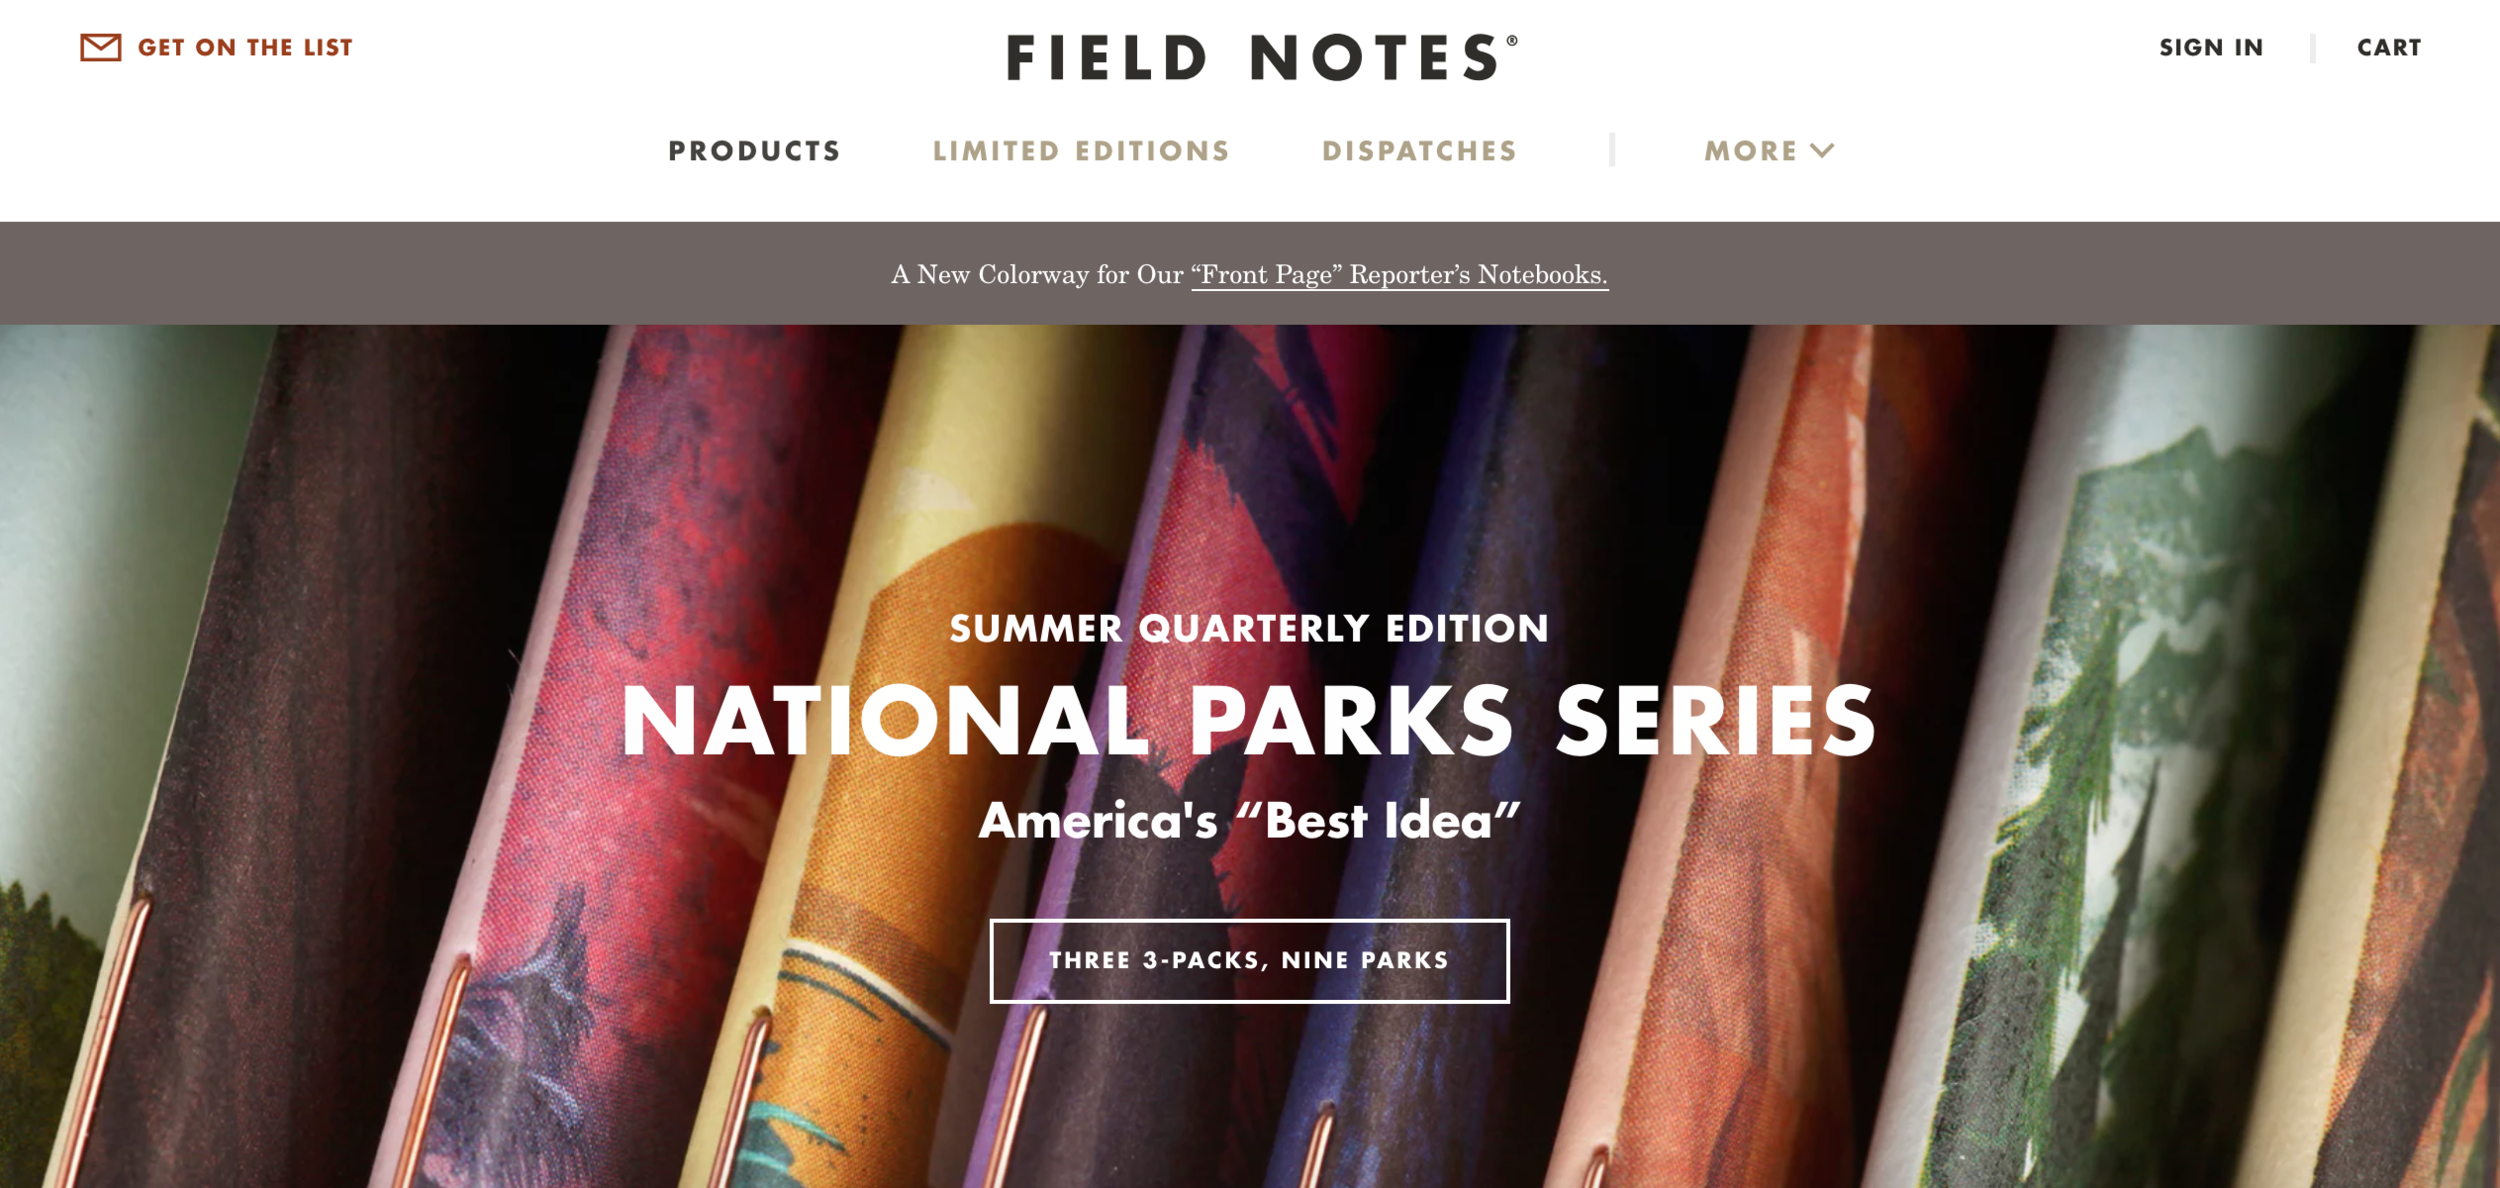 The Field Notes website